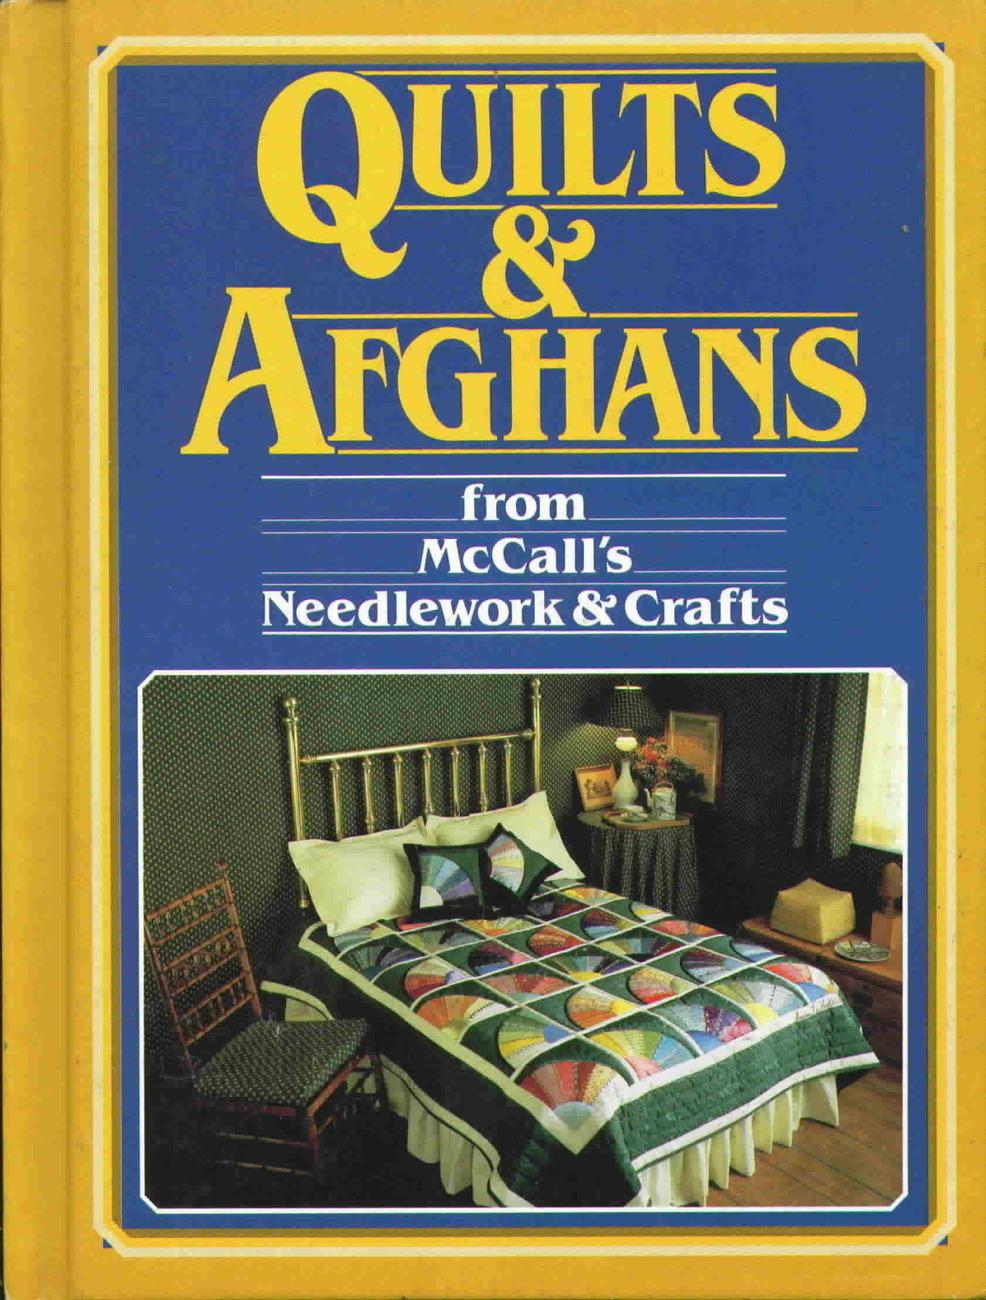 Quilts and afghans from mccalls needlework and crafts